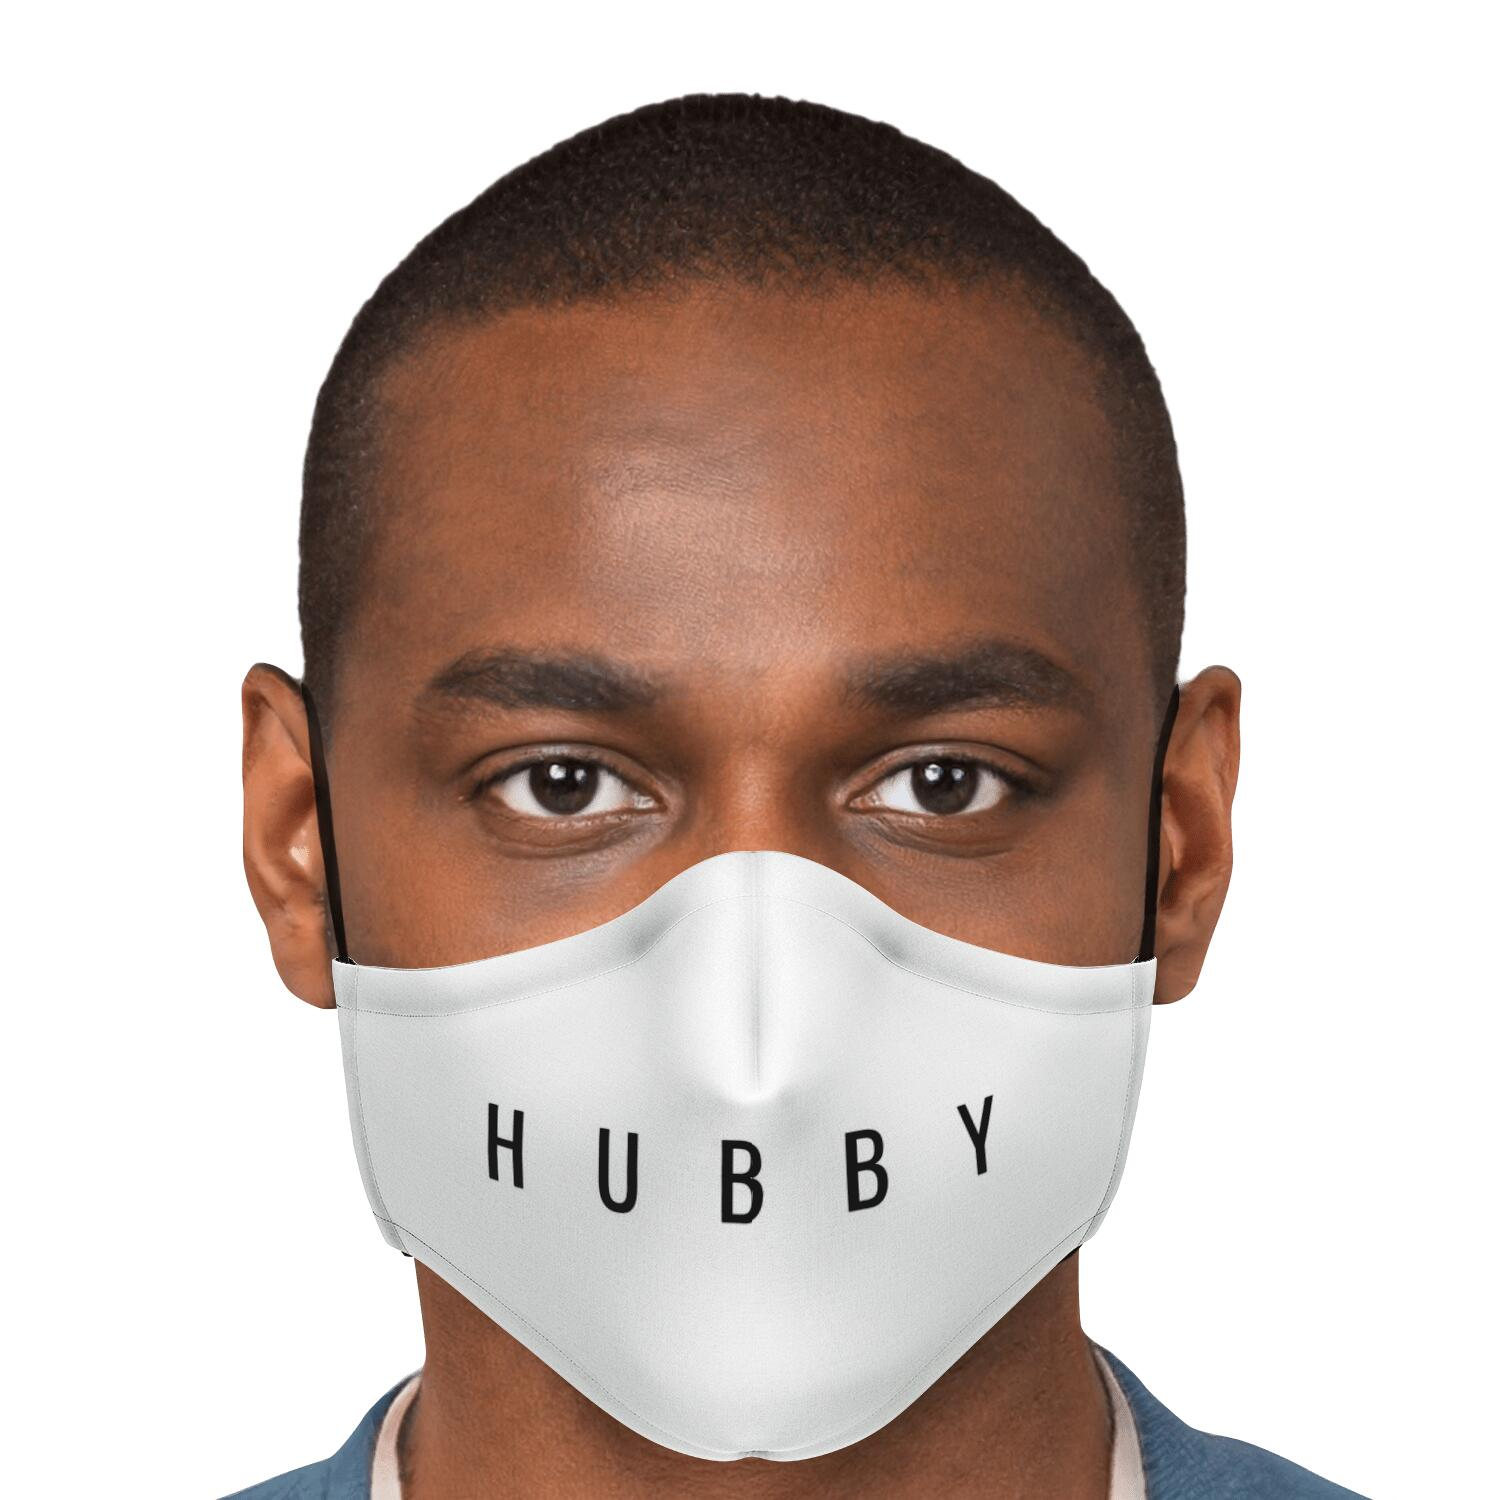 Hubby face mask